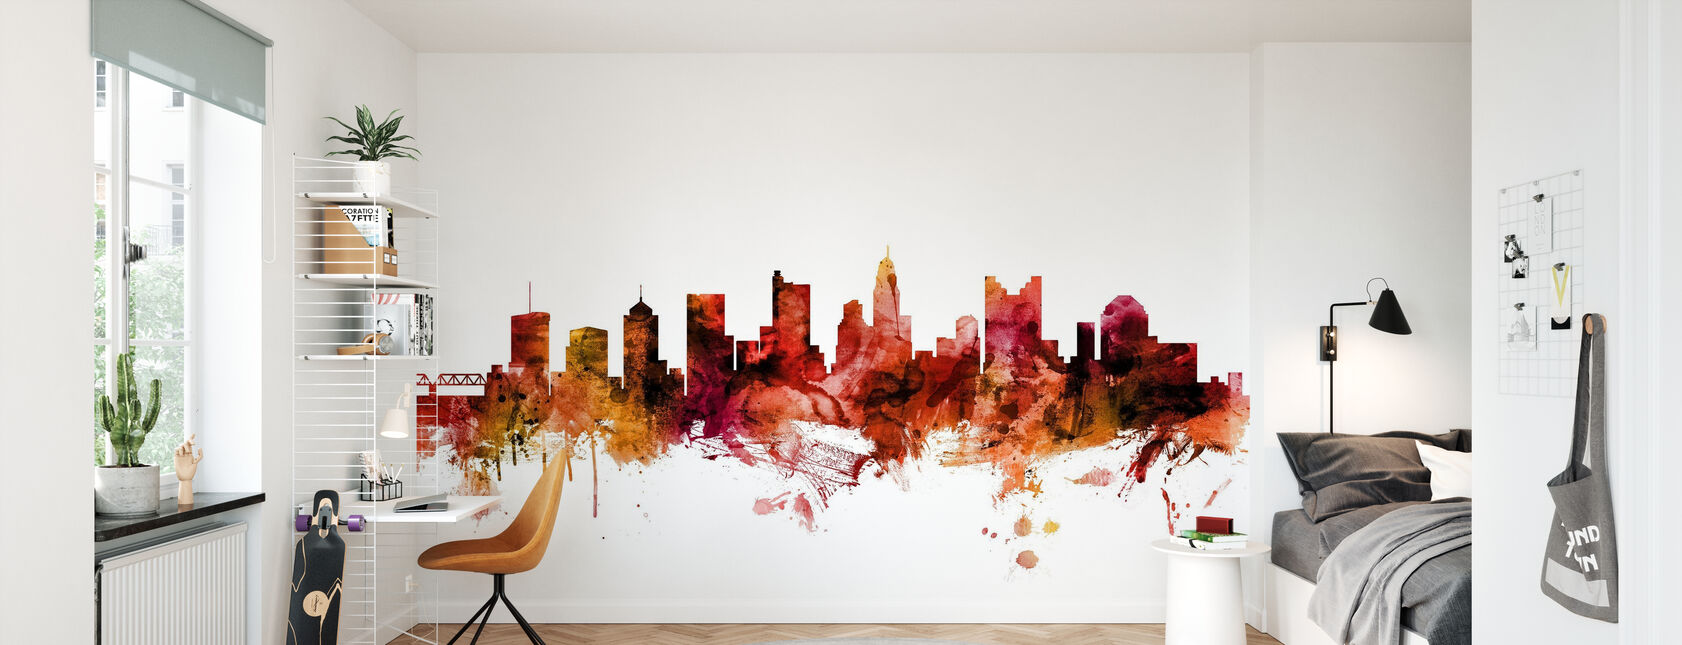 Columbus Ohio Skyline - Wallpaper - Kids Room